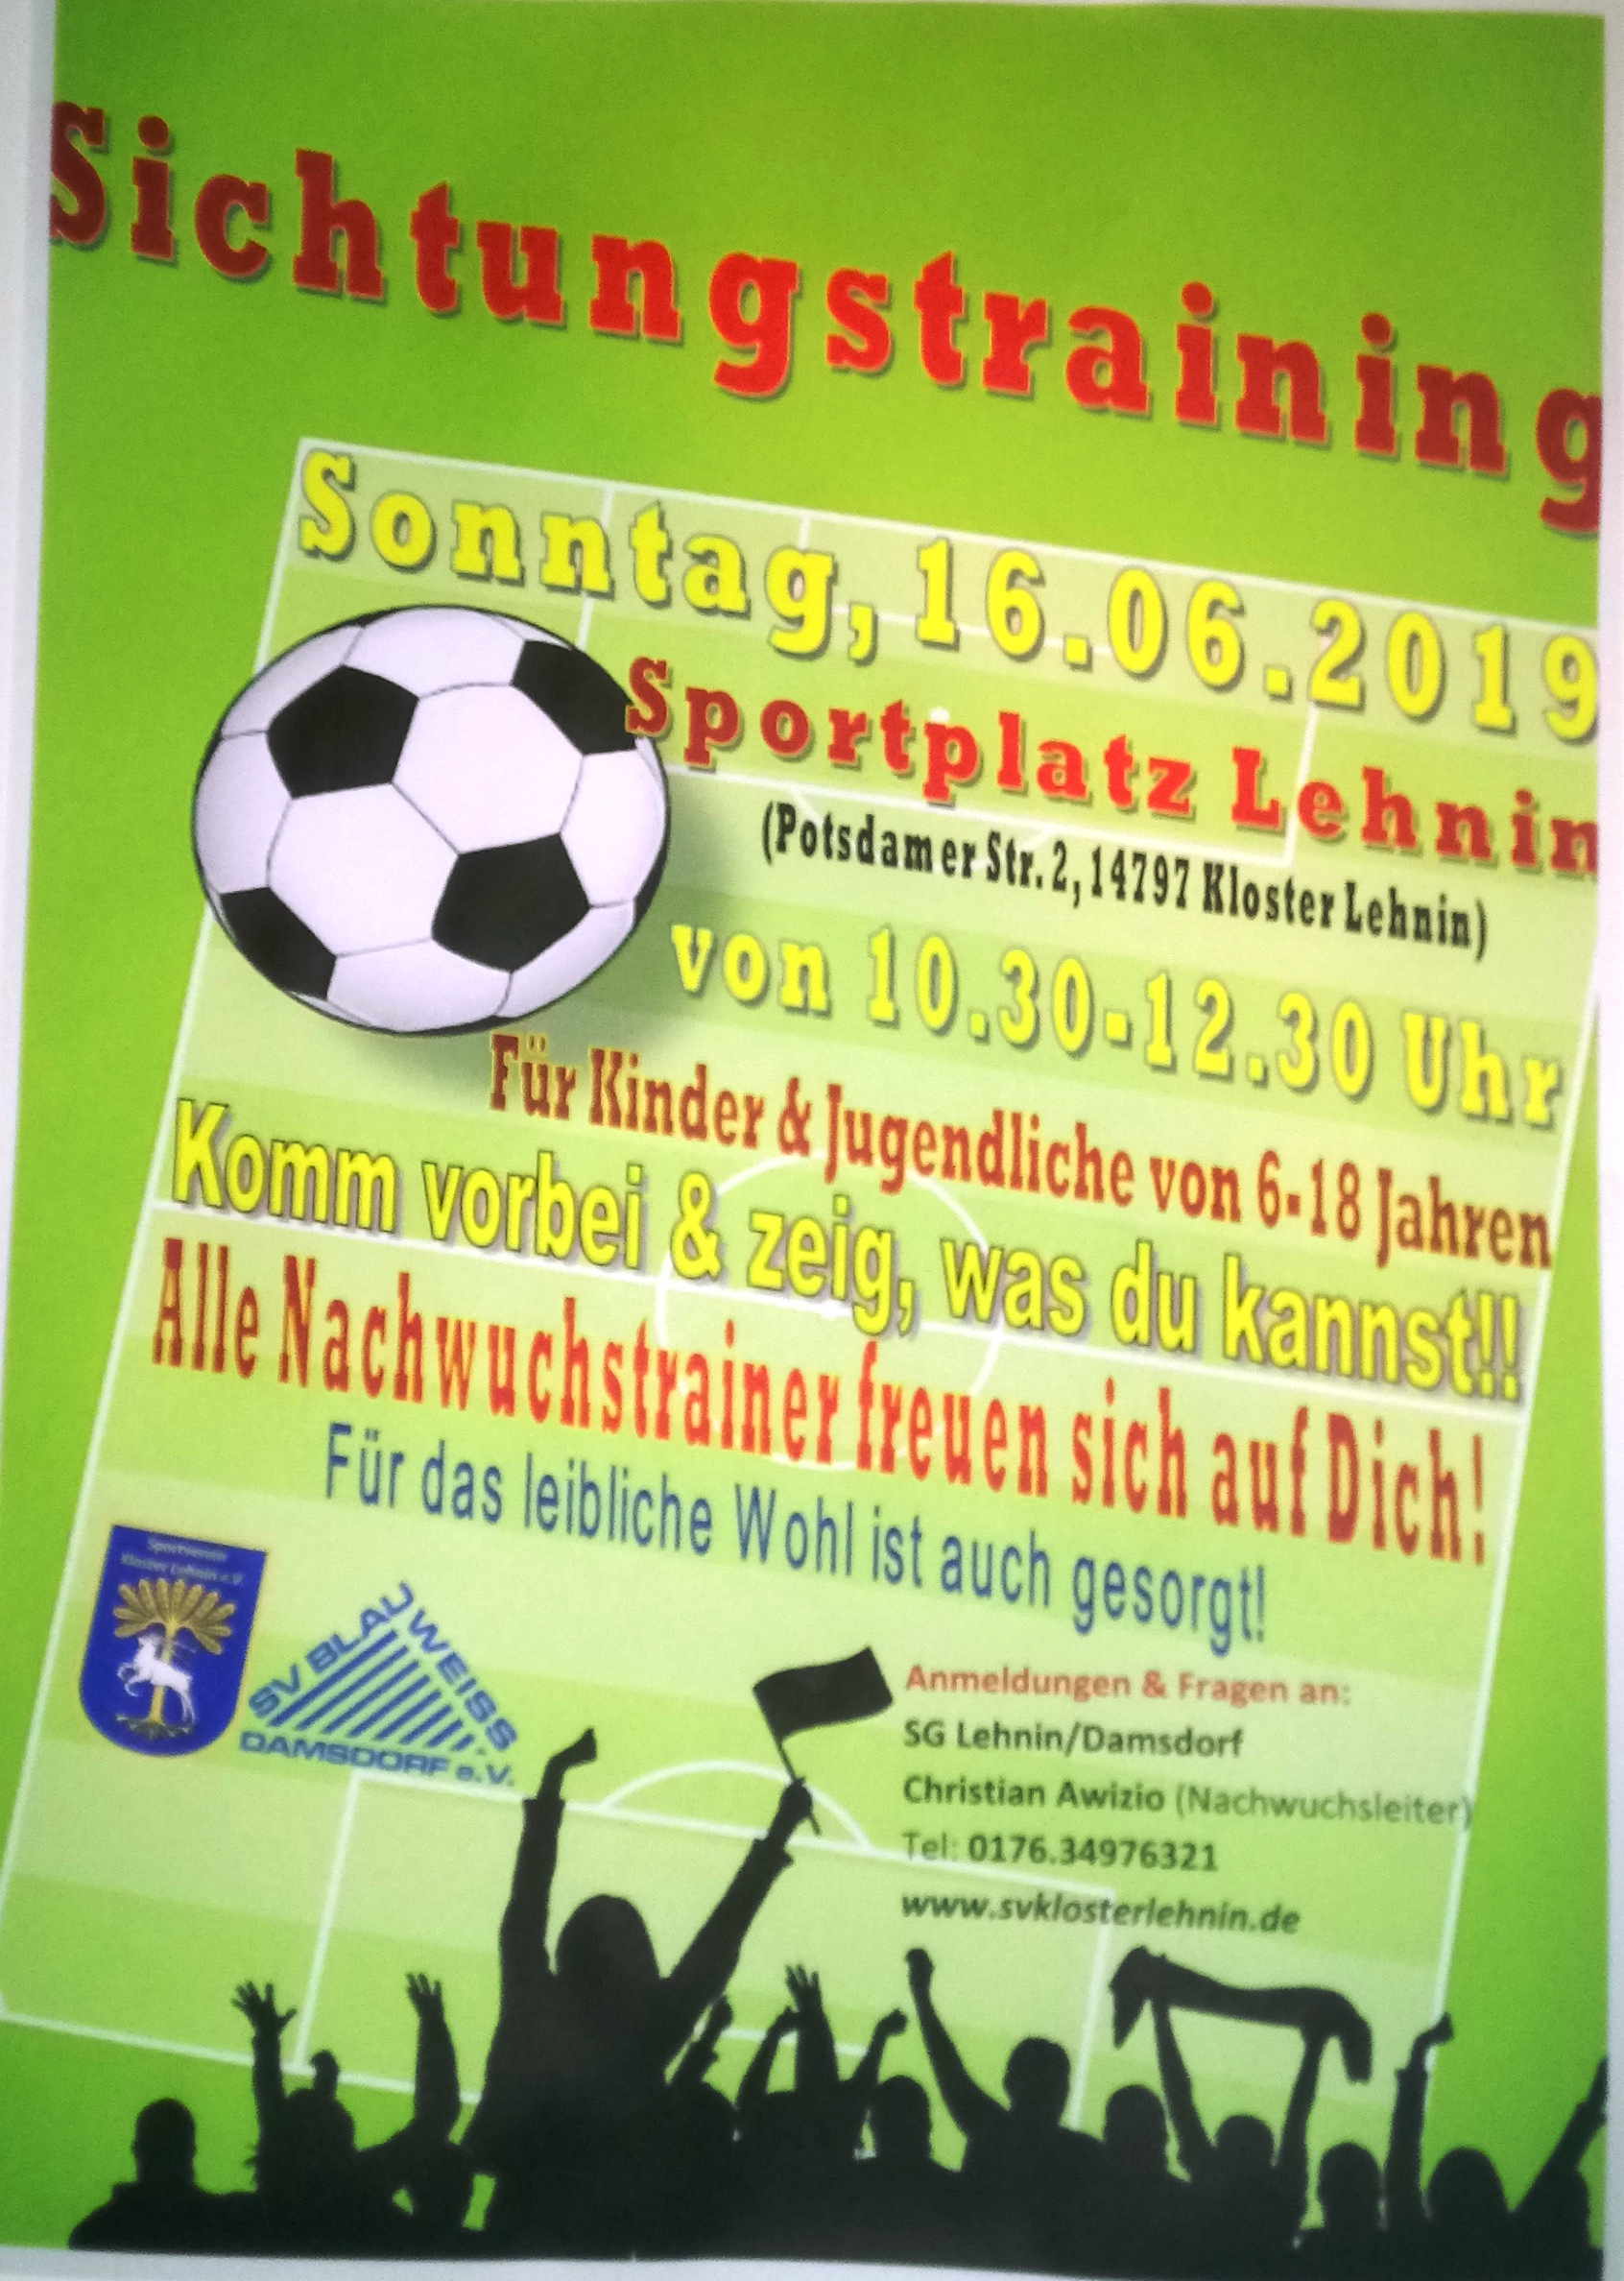 Flyer Sichtungstraining 2019.jpg